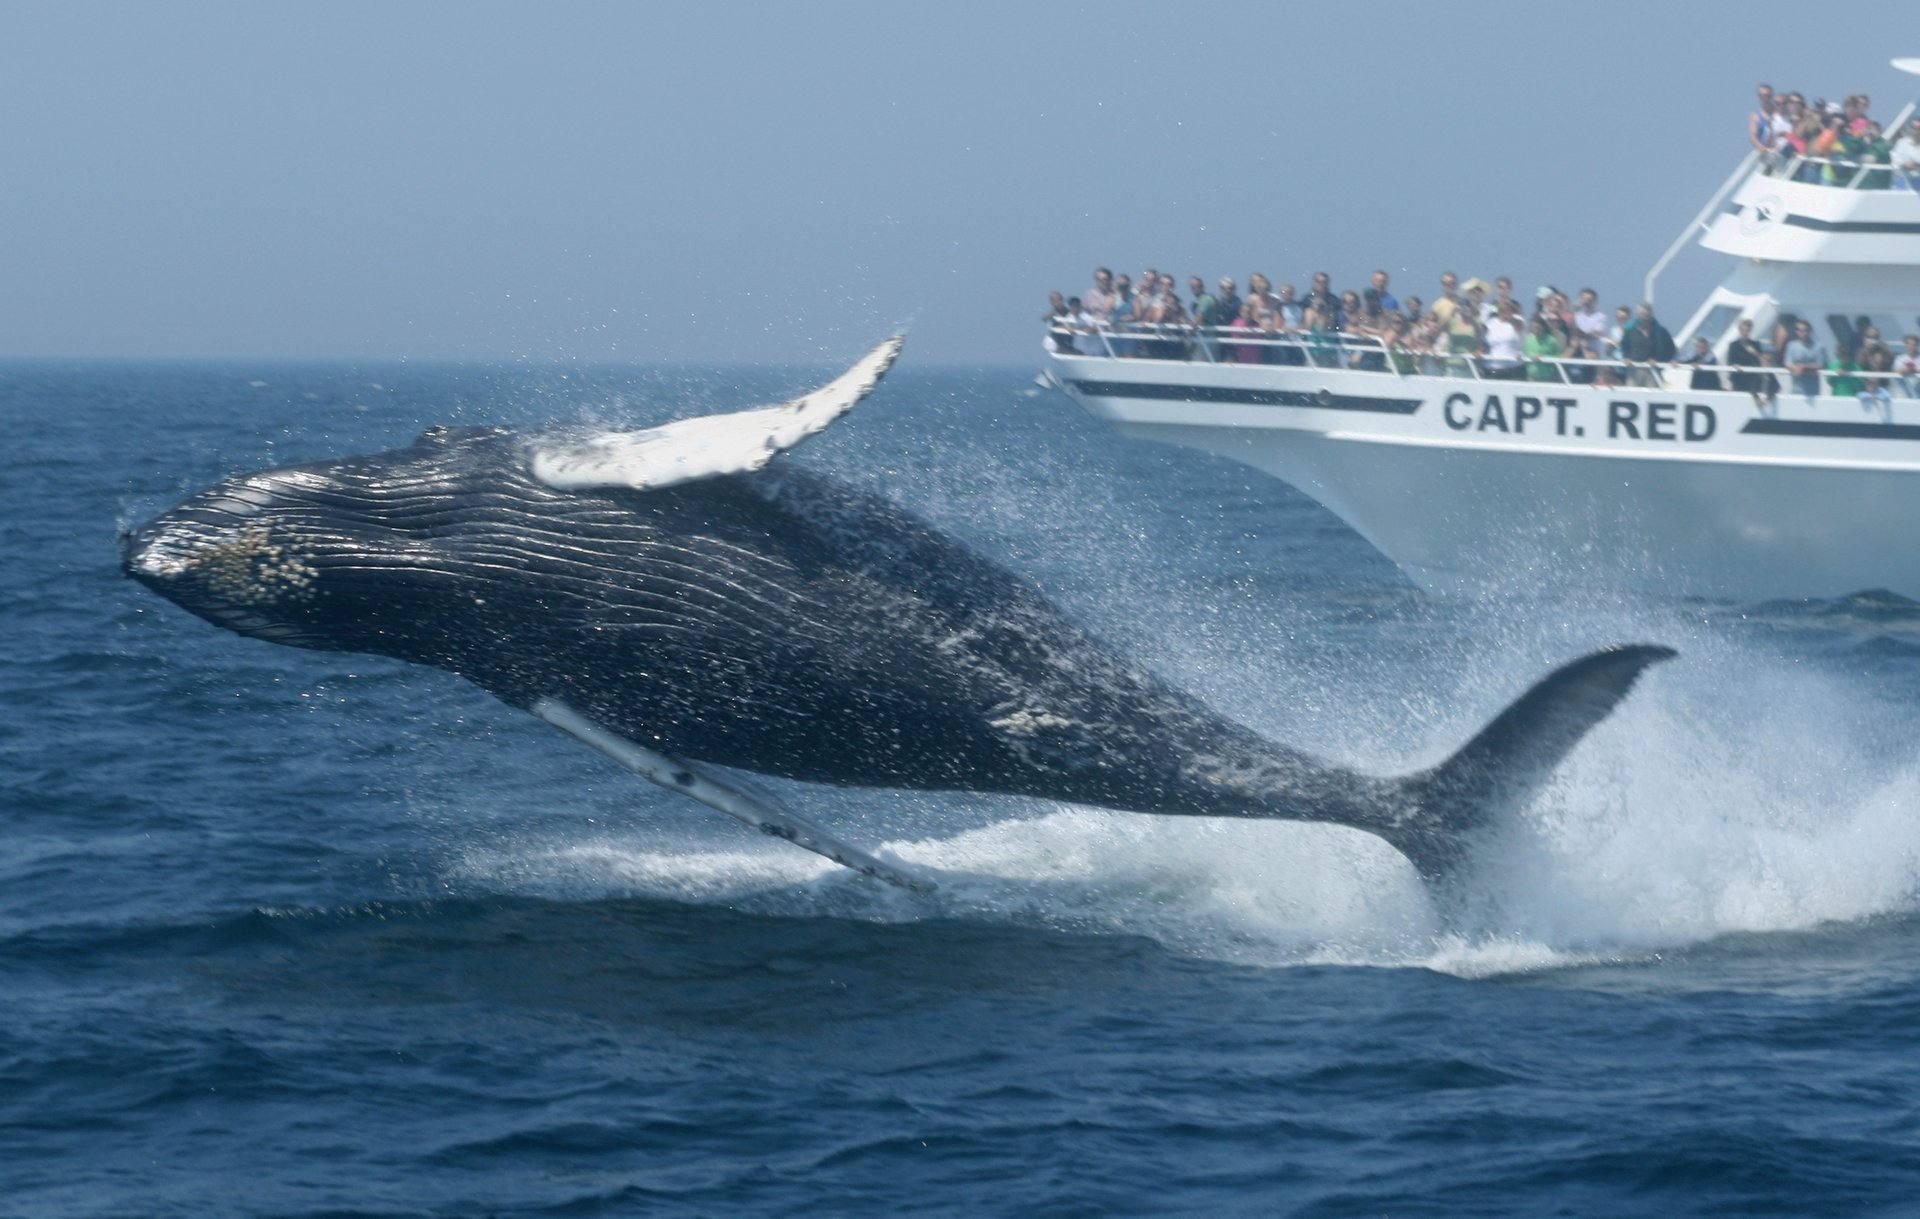 Whale Watching in Massachusetts 2019 - Best Time